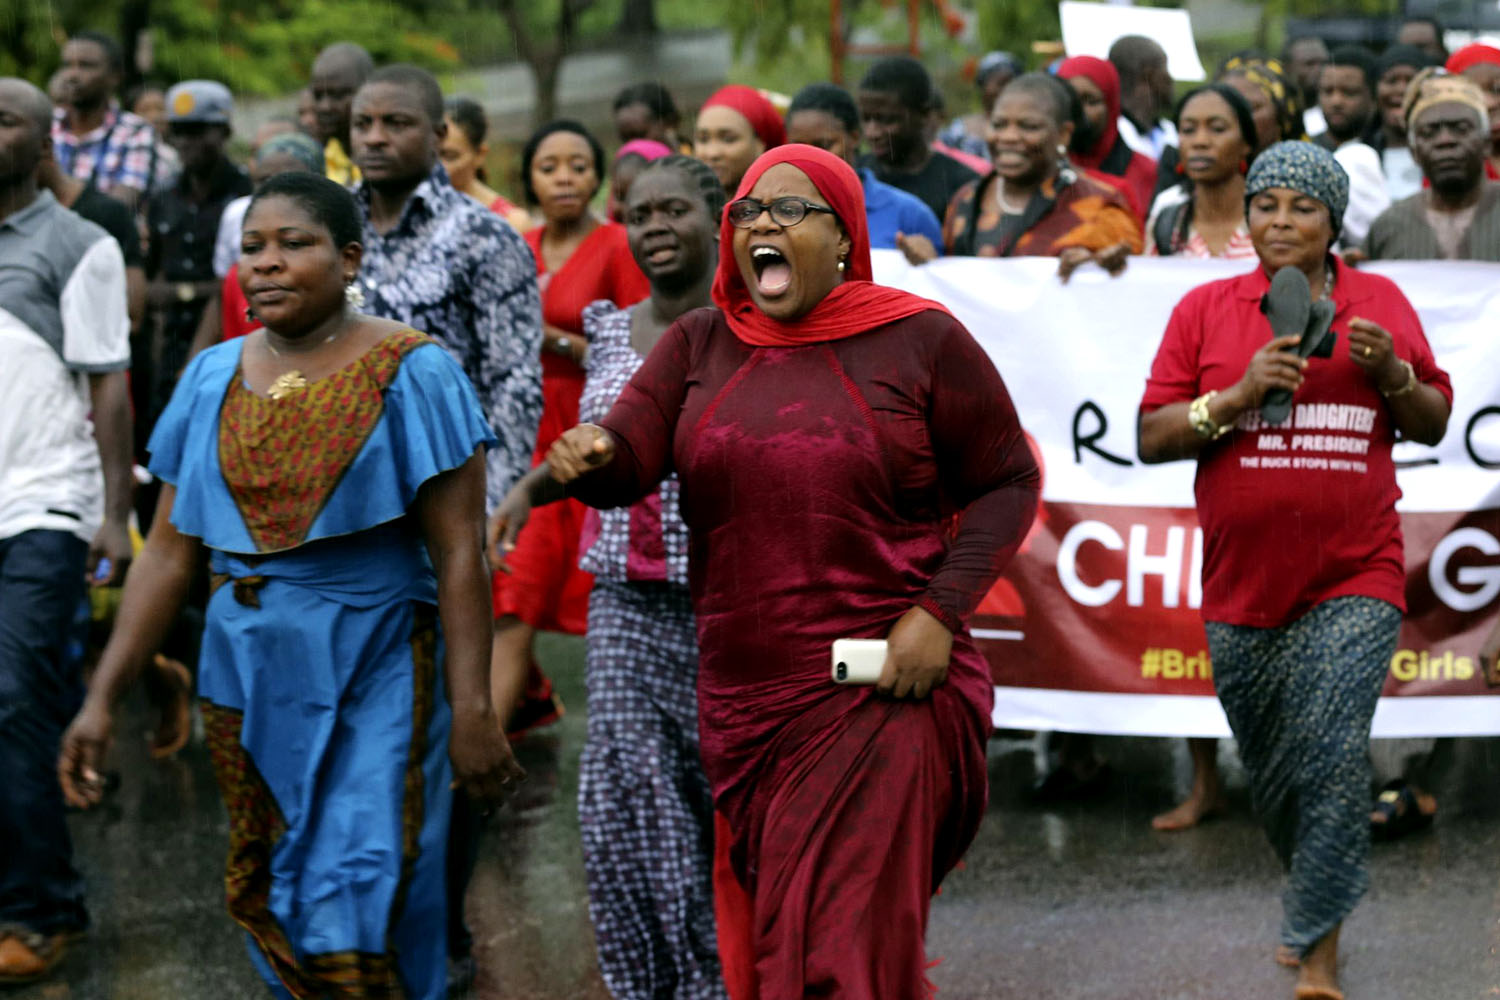 Angry parents take their protests to the streets, calling on the government and kidnappers to bring their daughters home. Desperate families have even taken the search for the over 200 missing girls into their own hands.